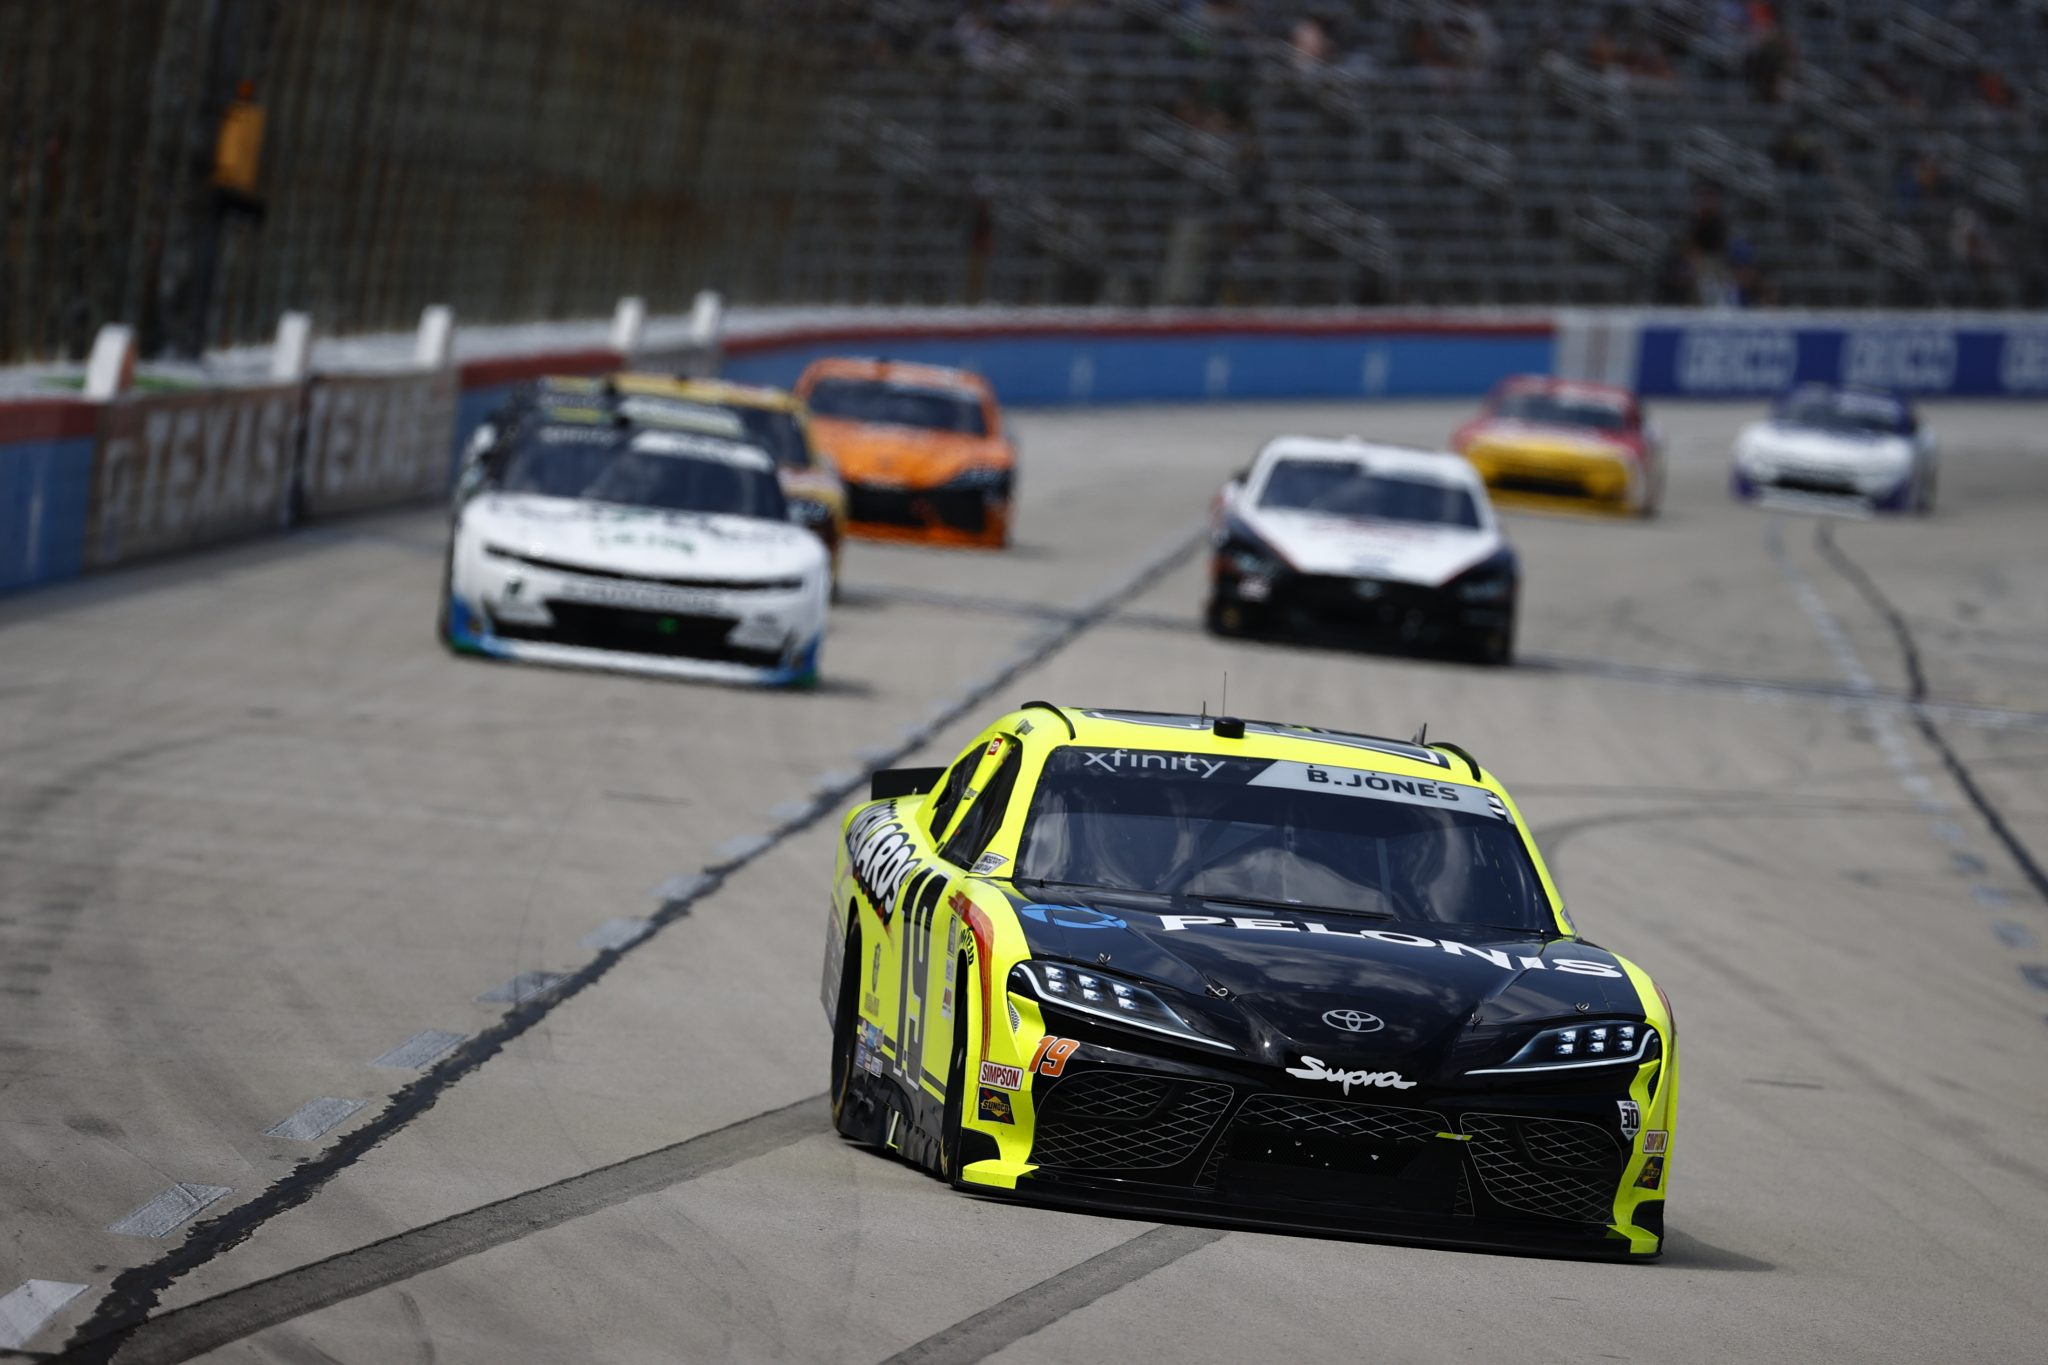 FORT WORTH, TEXAS - JUNE 12: Brandon Jones, driver of the #19 Menards/Pelonis Toyota, drives during the NASCAR Xfinity Series Alsco Uniforms 250 at Texas Motor Speedway on June 12, 2021 in Fort Worth, Texas. (Photo by Jared C. Tilton/Getty Images) | Getty Images